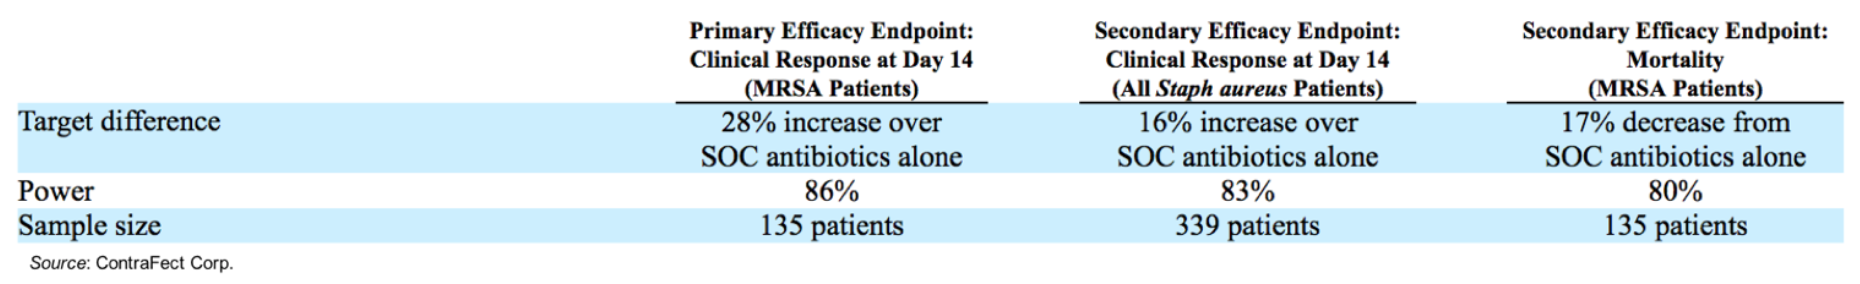 CFRX: Interim Futility Analysis for Phase 3 DISRUPT Trial Once 60% Enrolled…